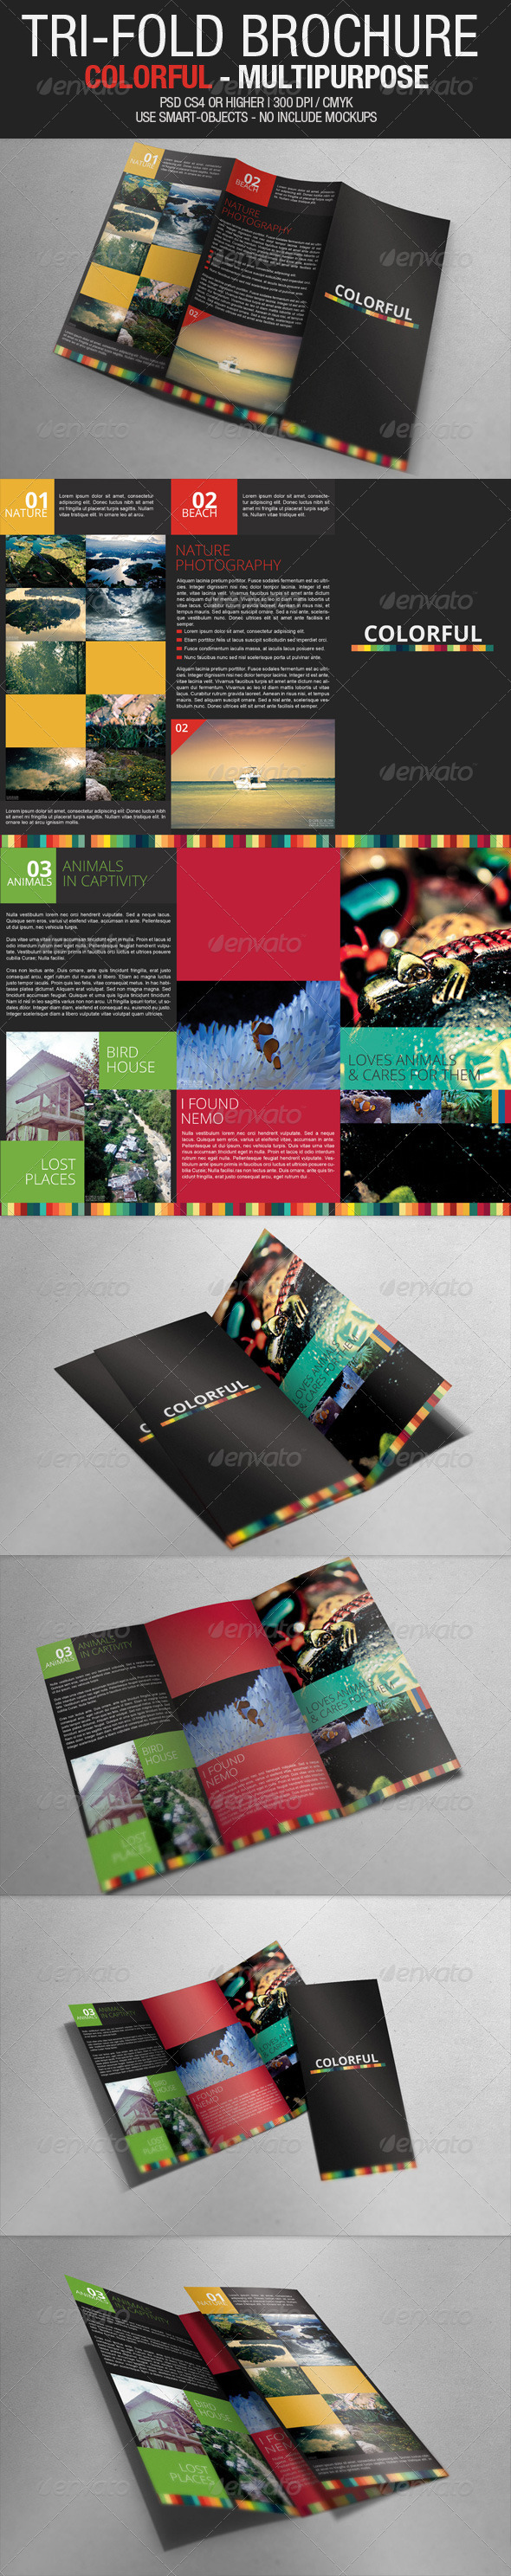 GraphicRiver Tri Fold Brochure Colorful Multipurpose 2919517